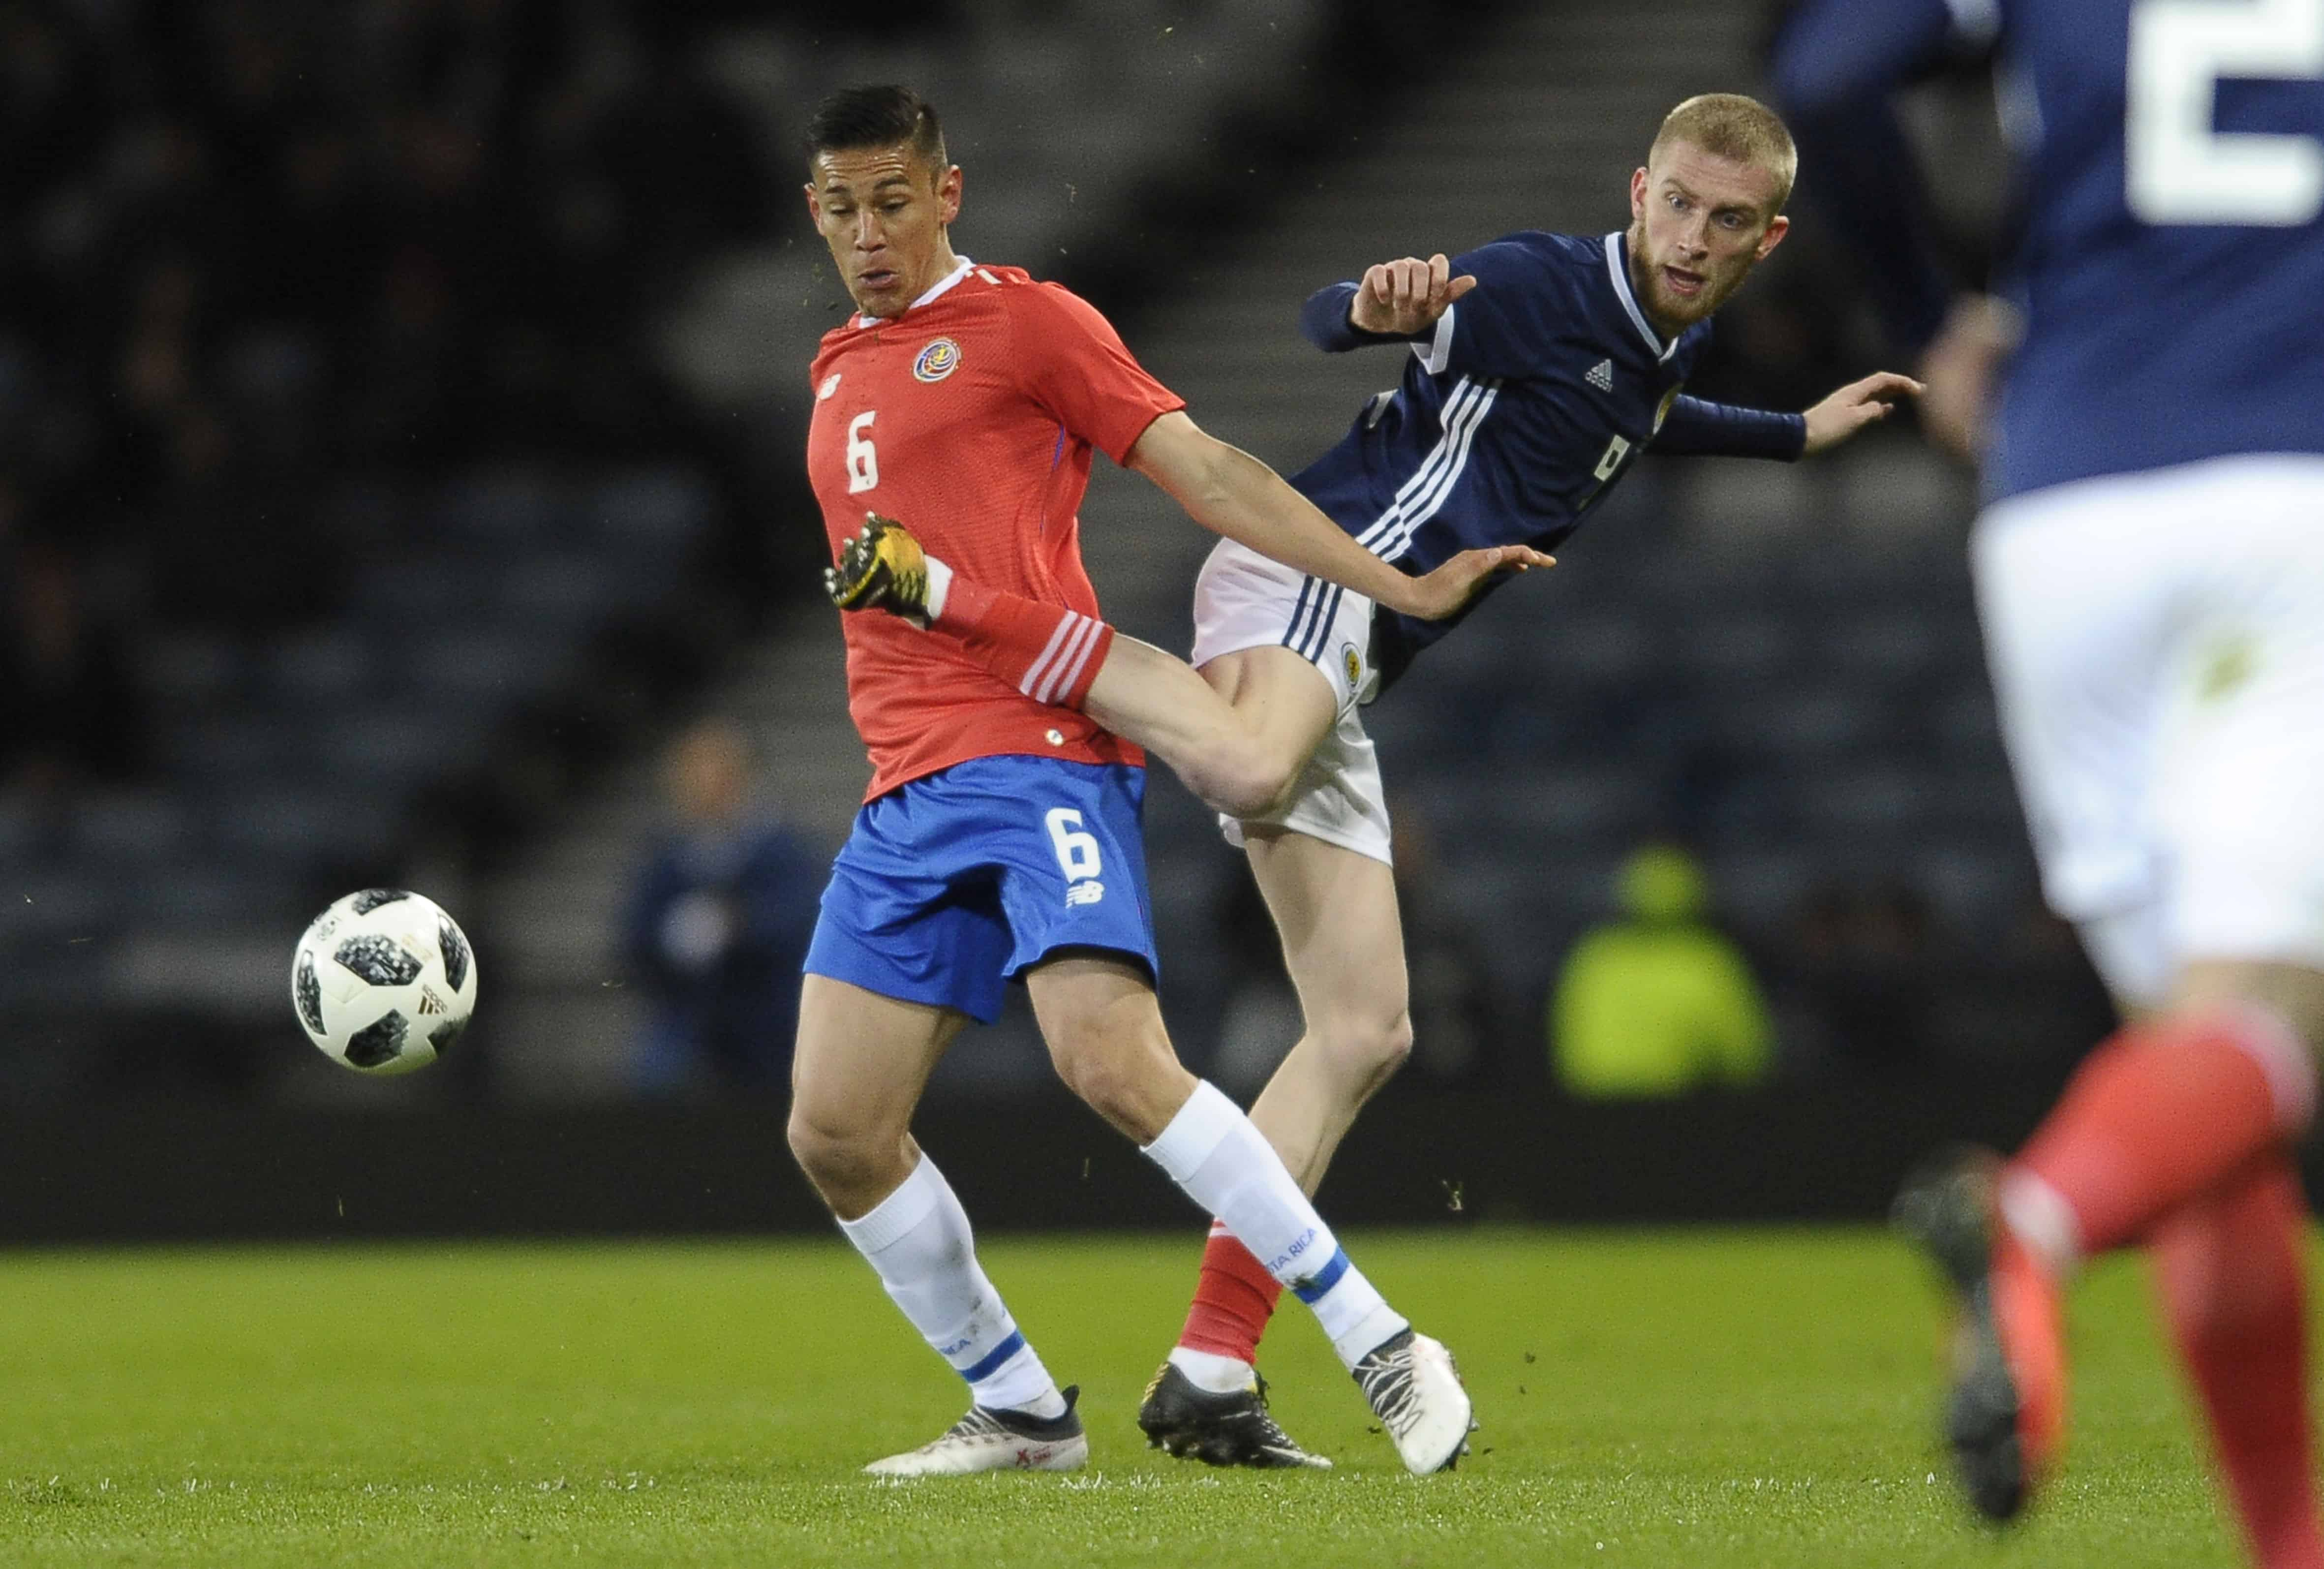 Costa Rican defender Oscar Duarte (L) vies with Scottish striker Oliver McBurnie during the international friendly between Scotland and Costa Rica at Hampden Park in Glasgow, Scotland on March 23, 2018.